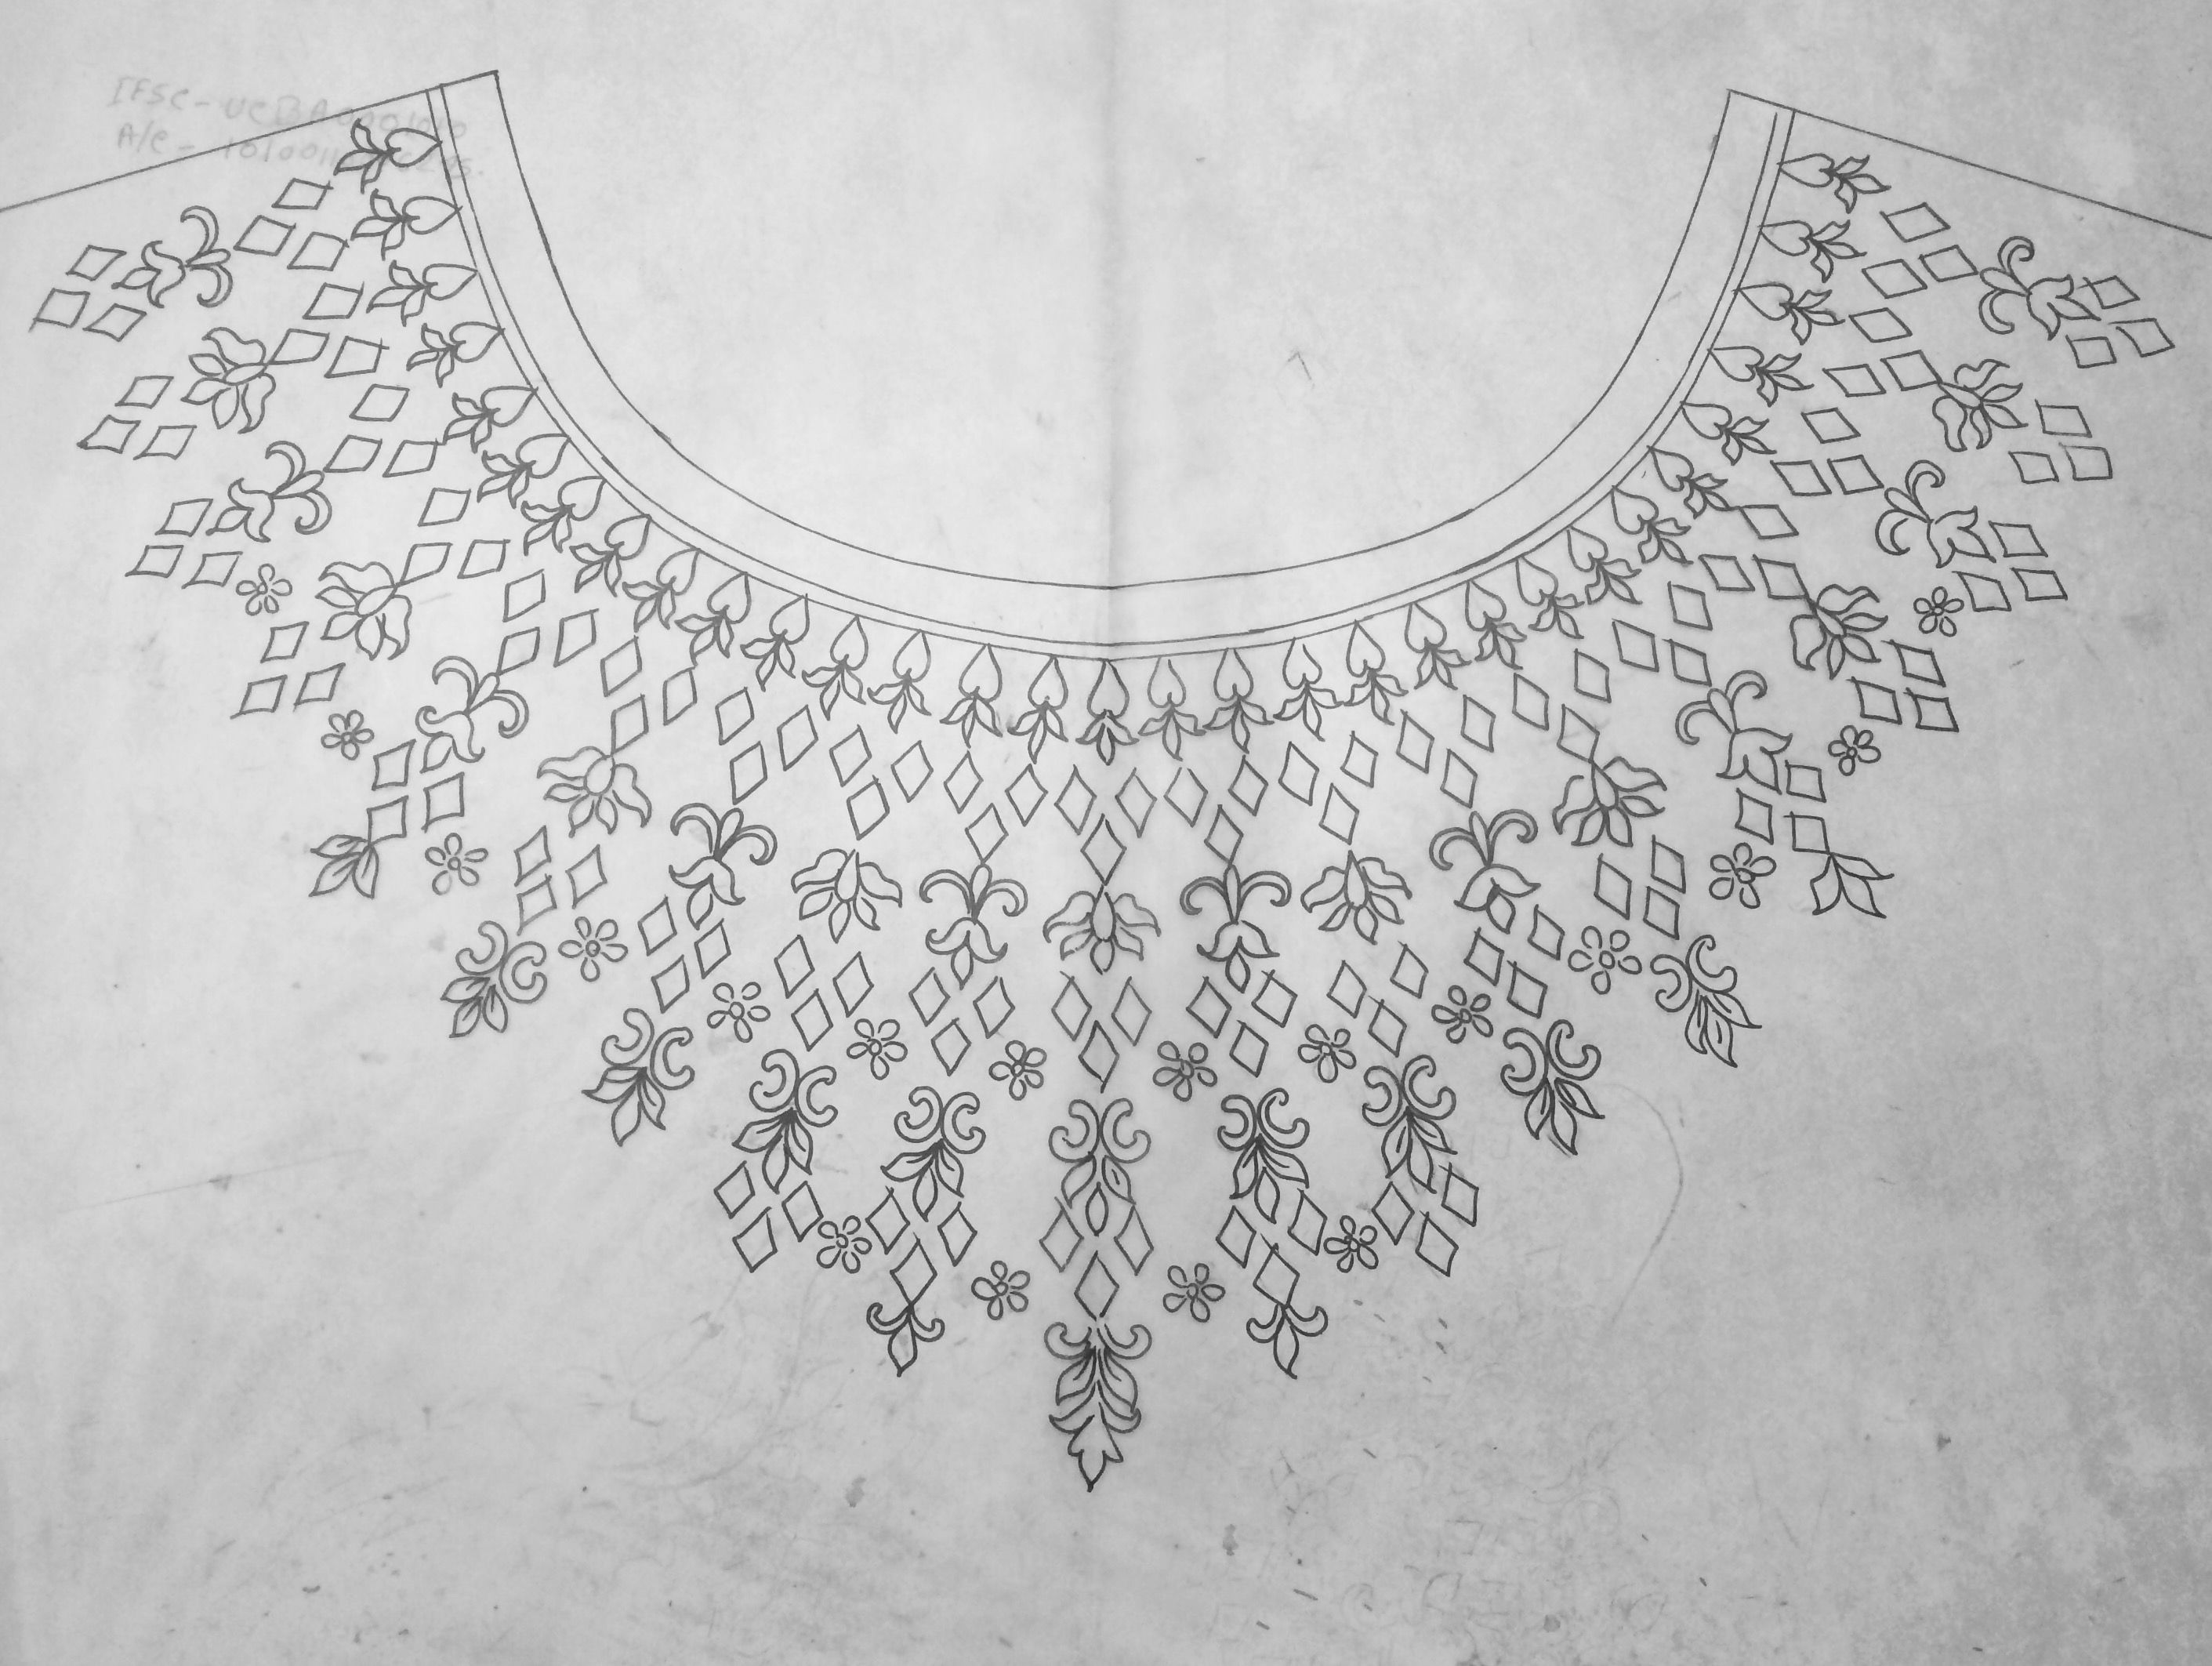 Yoke design | embroideries | Embroidery designs, Embroidery ...